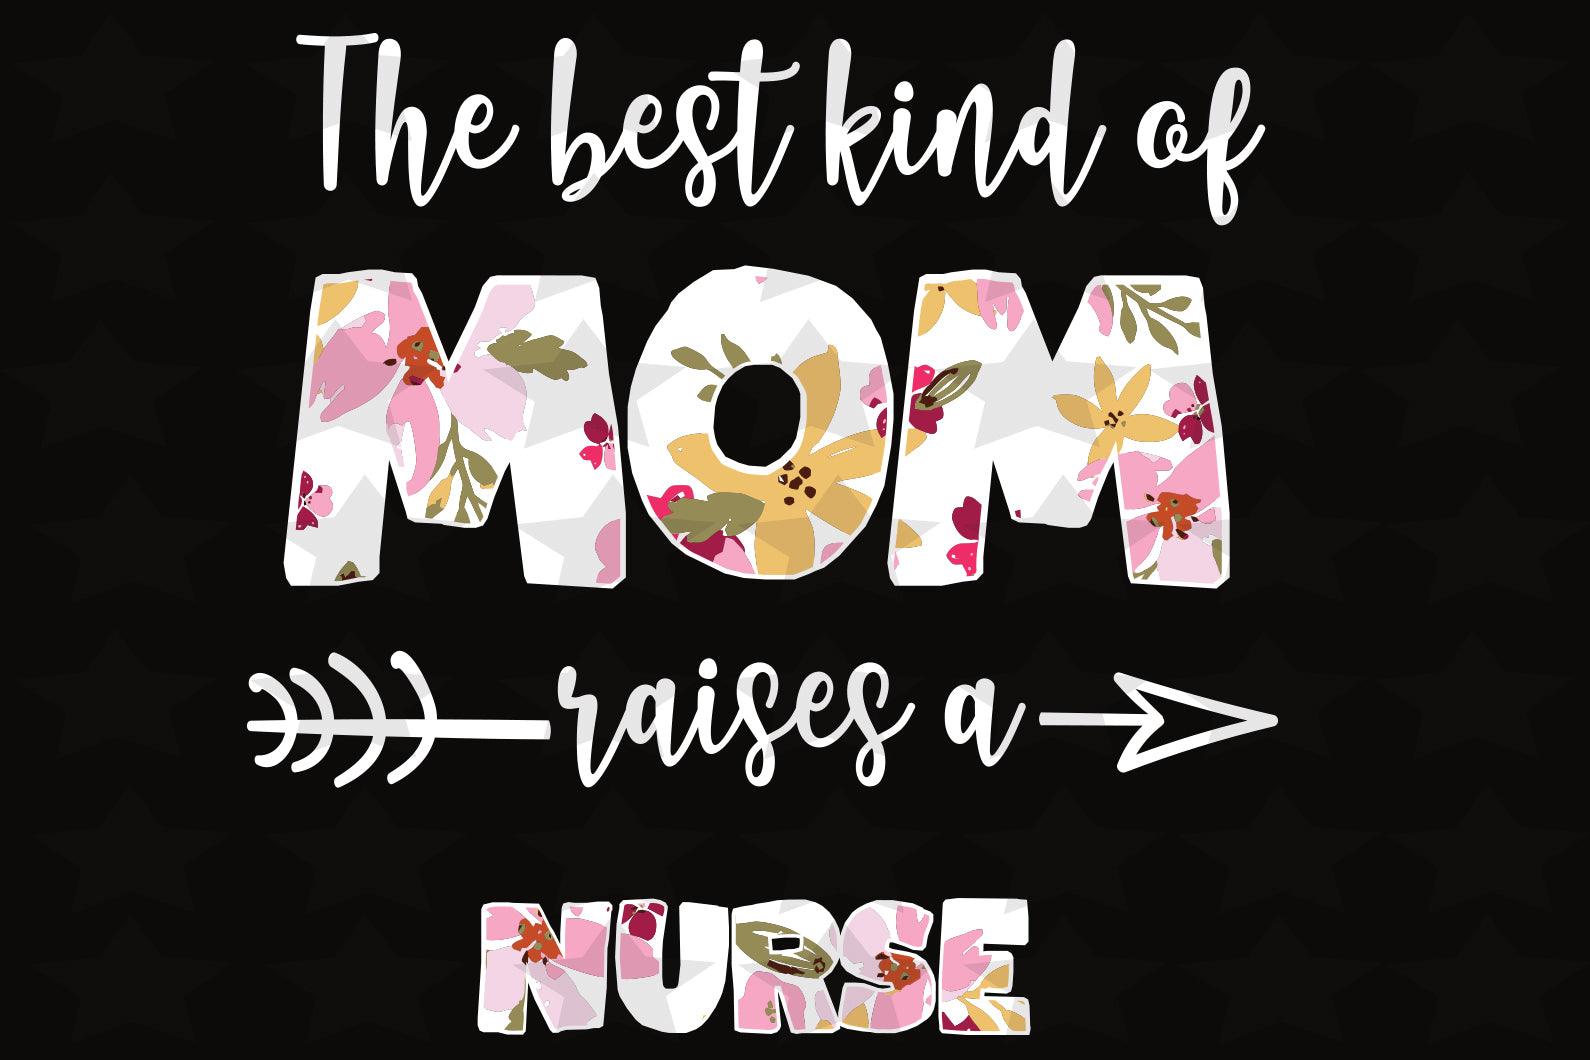 The best kind of mom raises a nurse, nurse svg, nurse gift, mom nurse, Mothers Day Svg, Mothers Day Gift Svg, family svg, family shirt,family gift,trending svg, Files For Silhouette, Files For Cricut, SVG, DXF, EPS, PNG, Instant Download